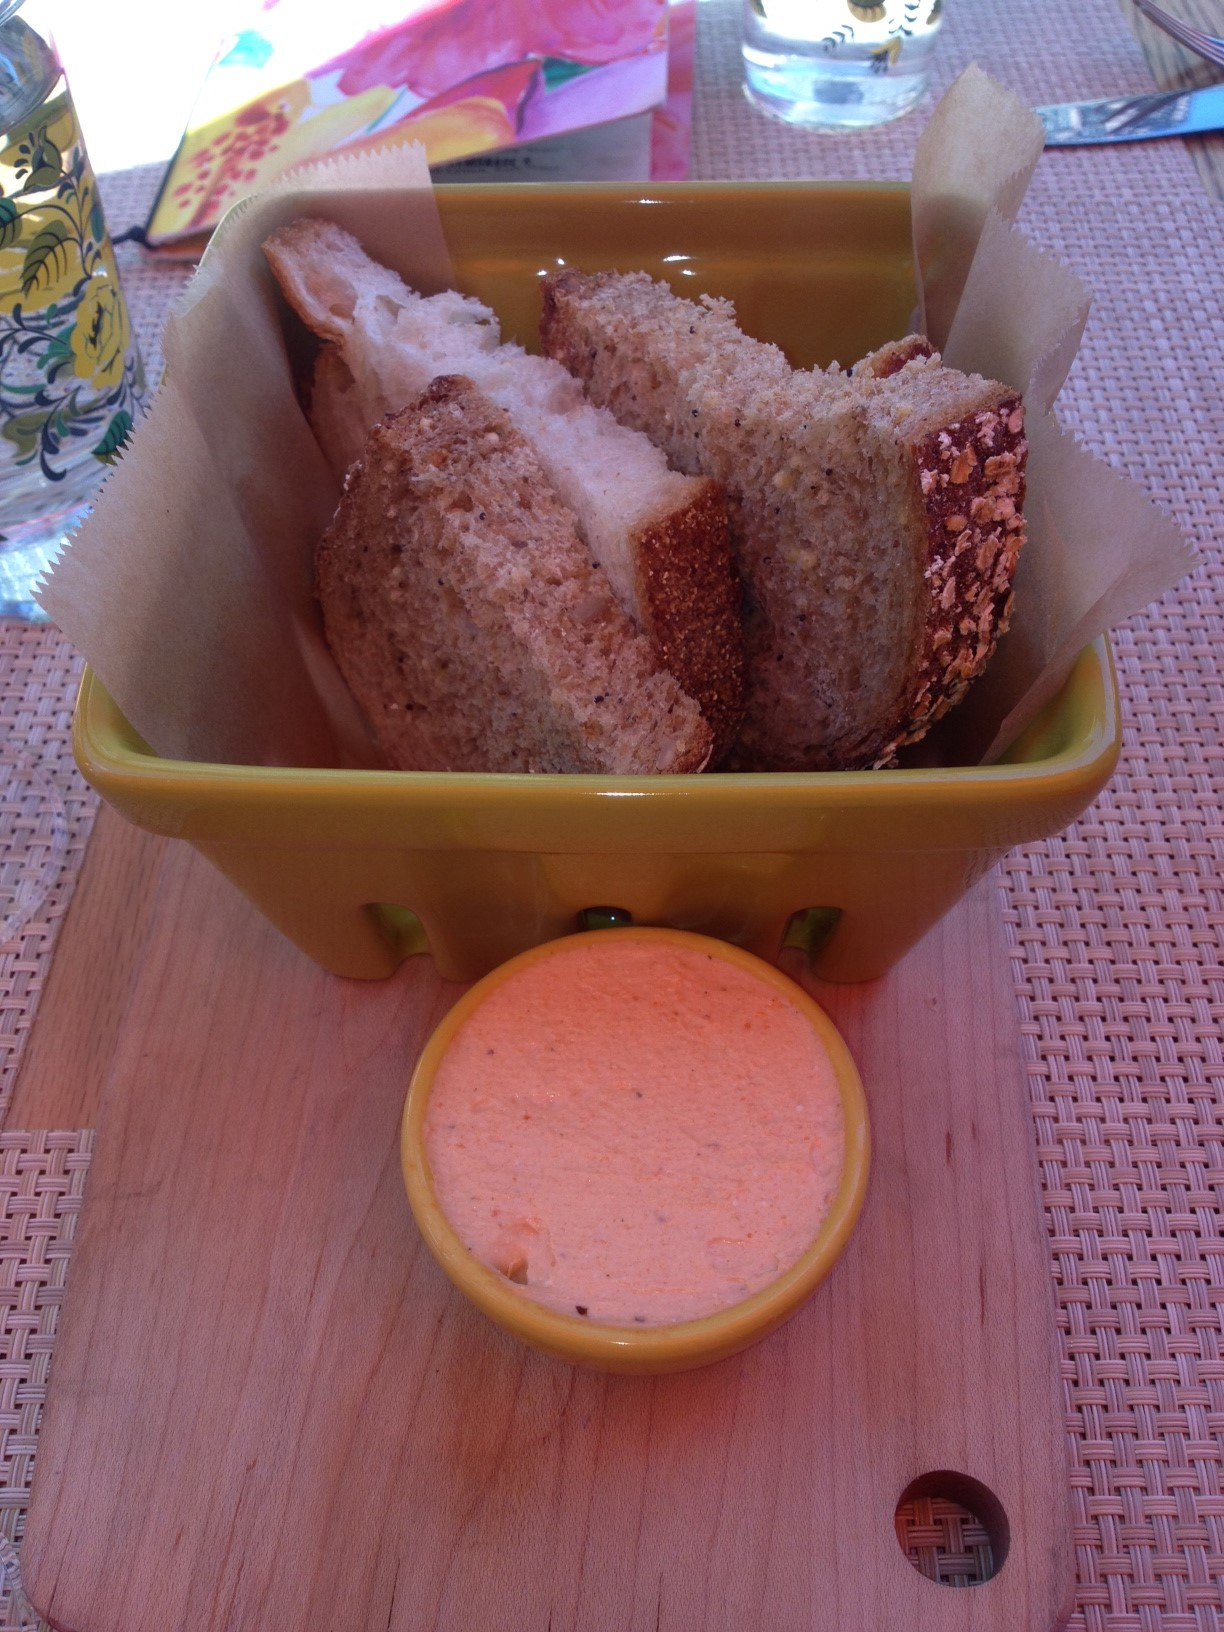 Bread - don't you love the ceramic fruit carton - again, Anthropologie for the win!